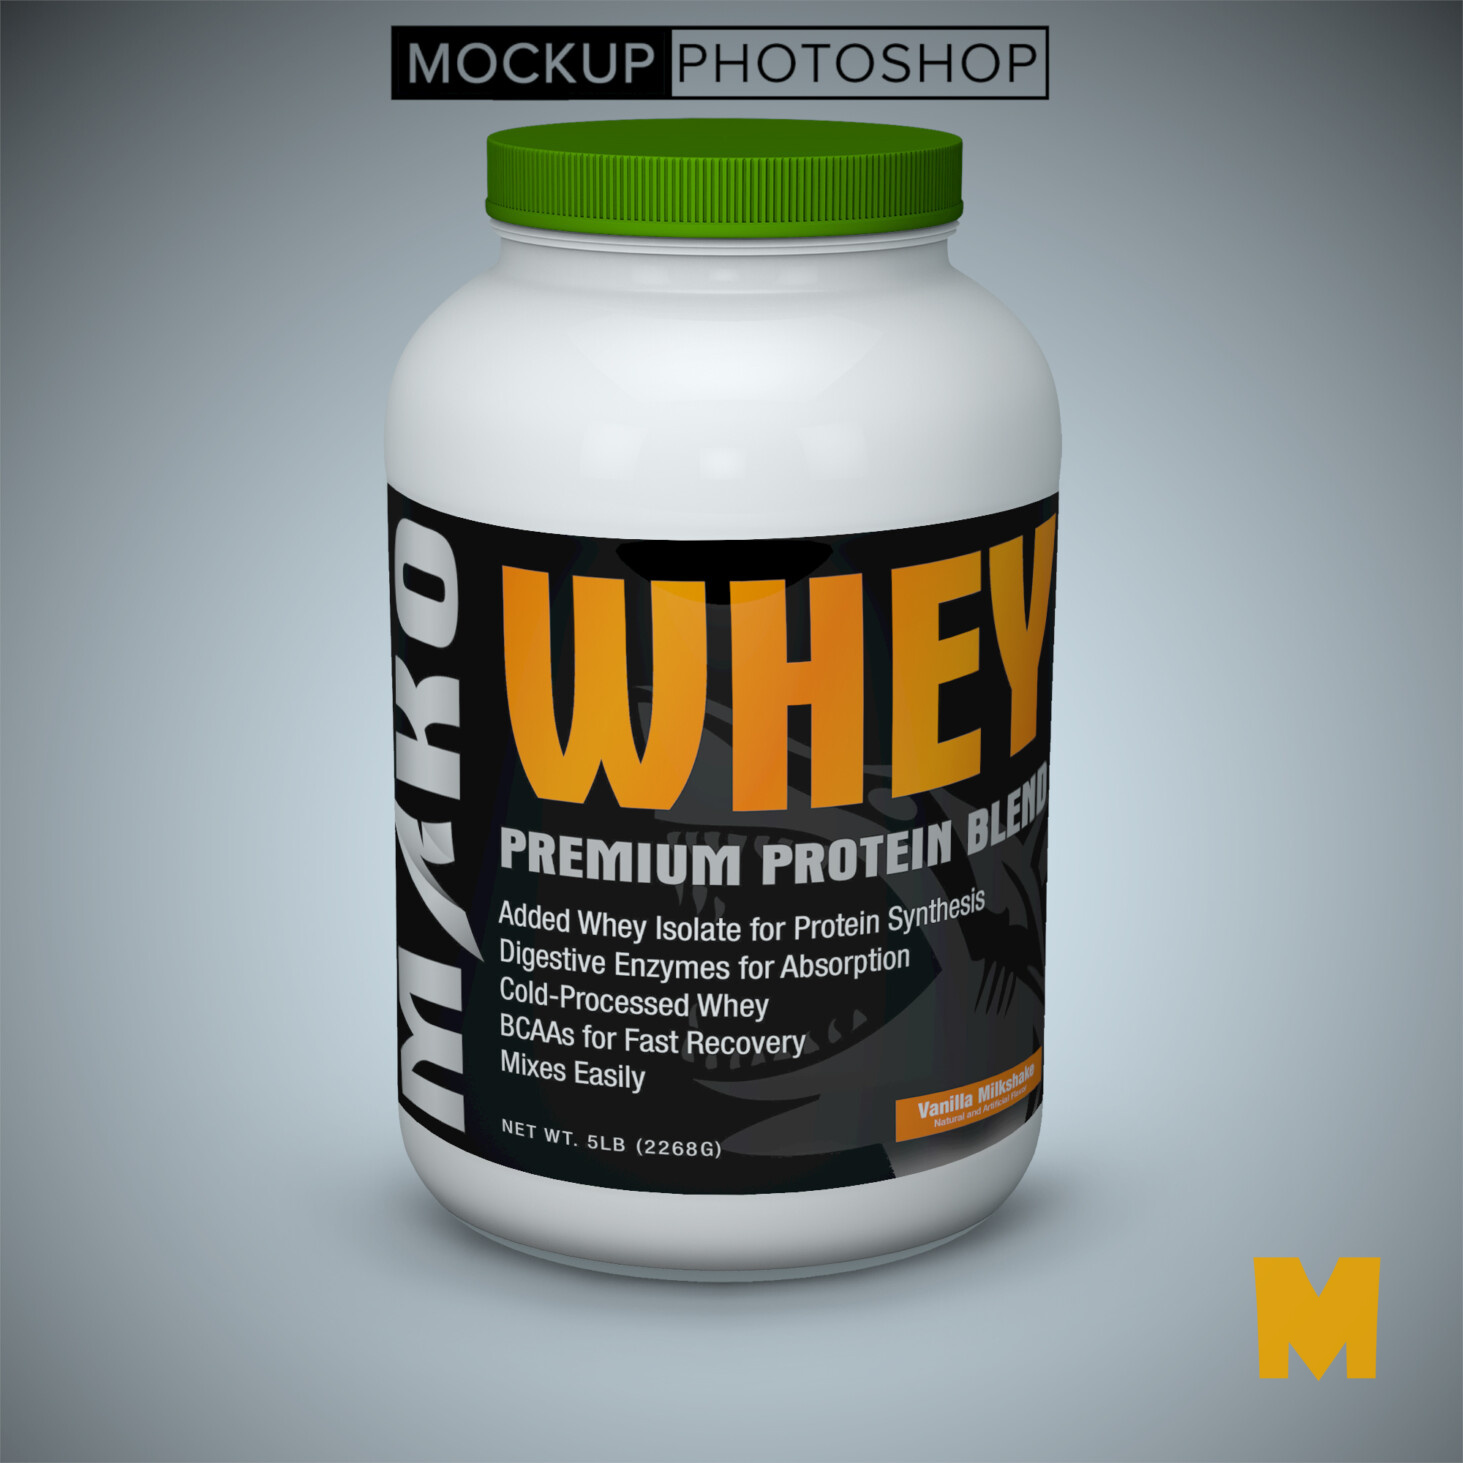 GYM Protein Bottle Label Mockups